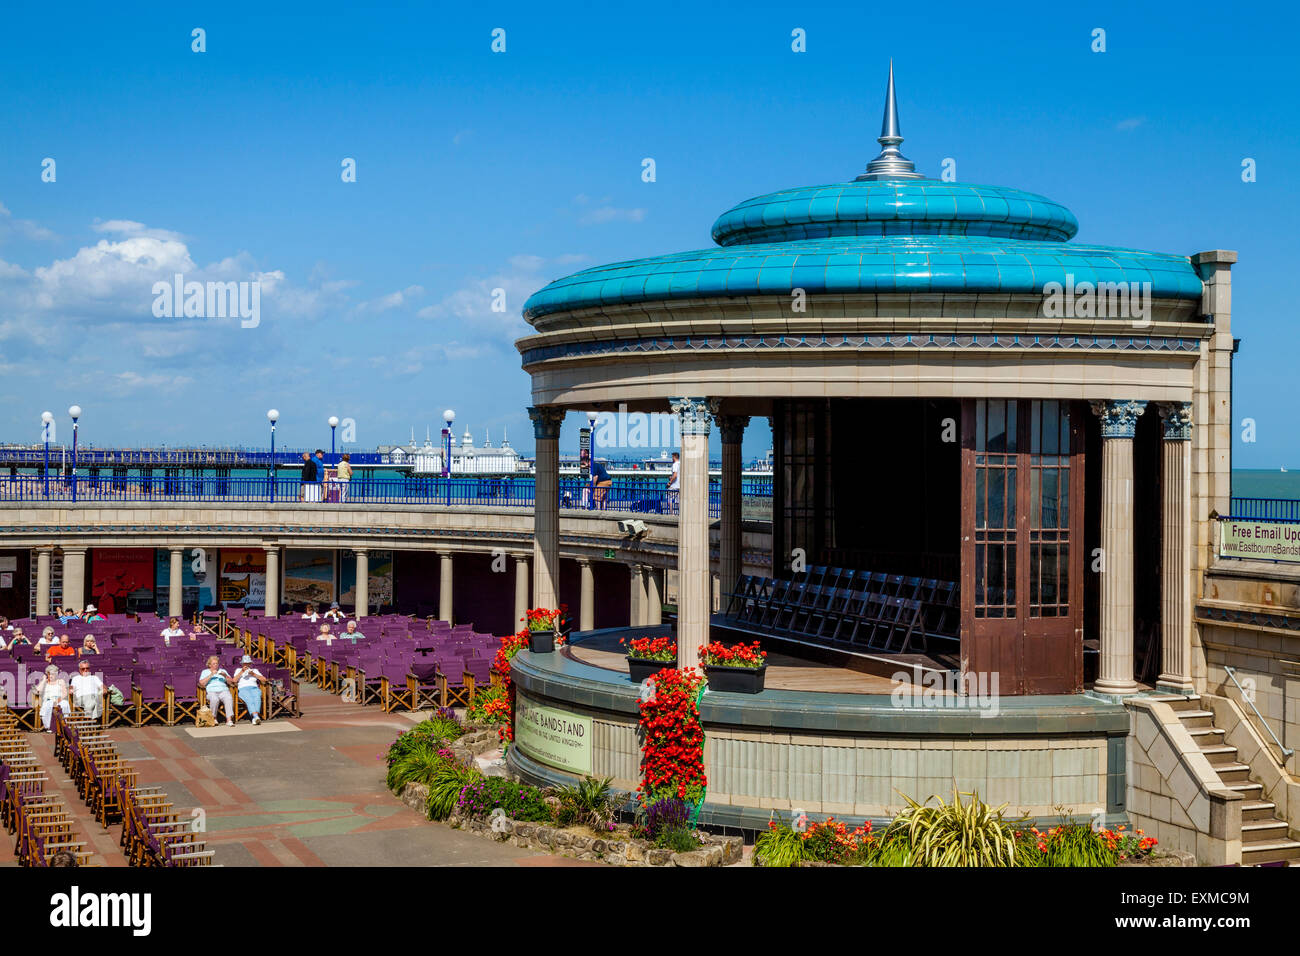 The Bandstand, Eastbourne, Sussex, UK - Stock Image